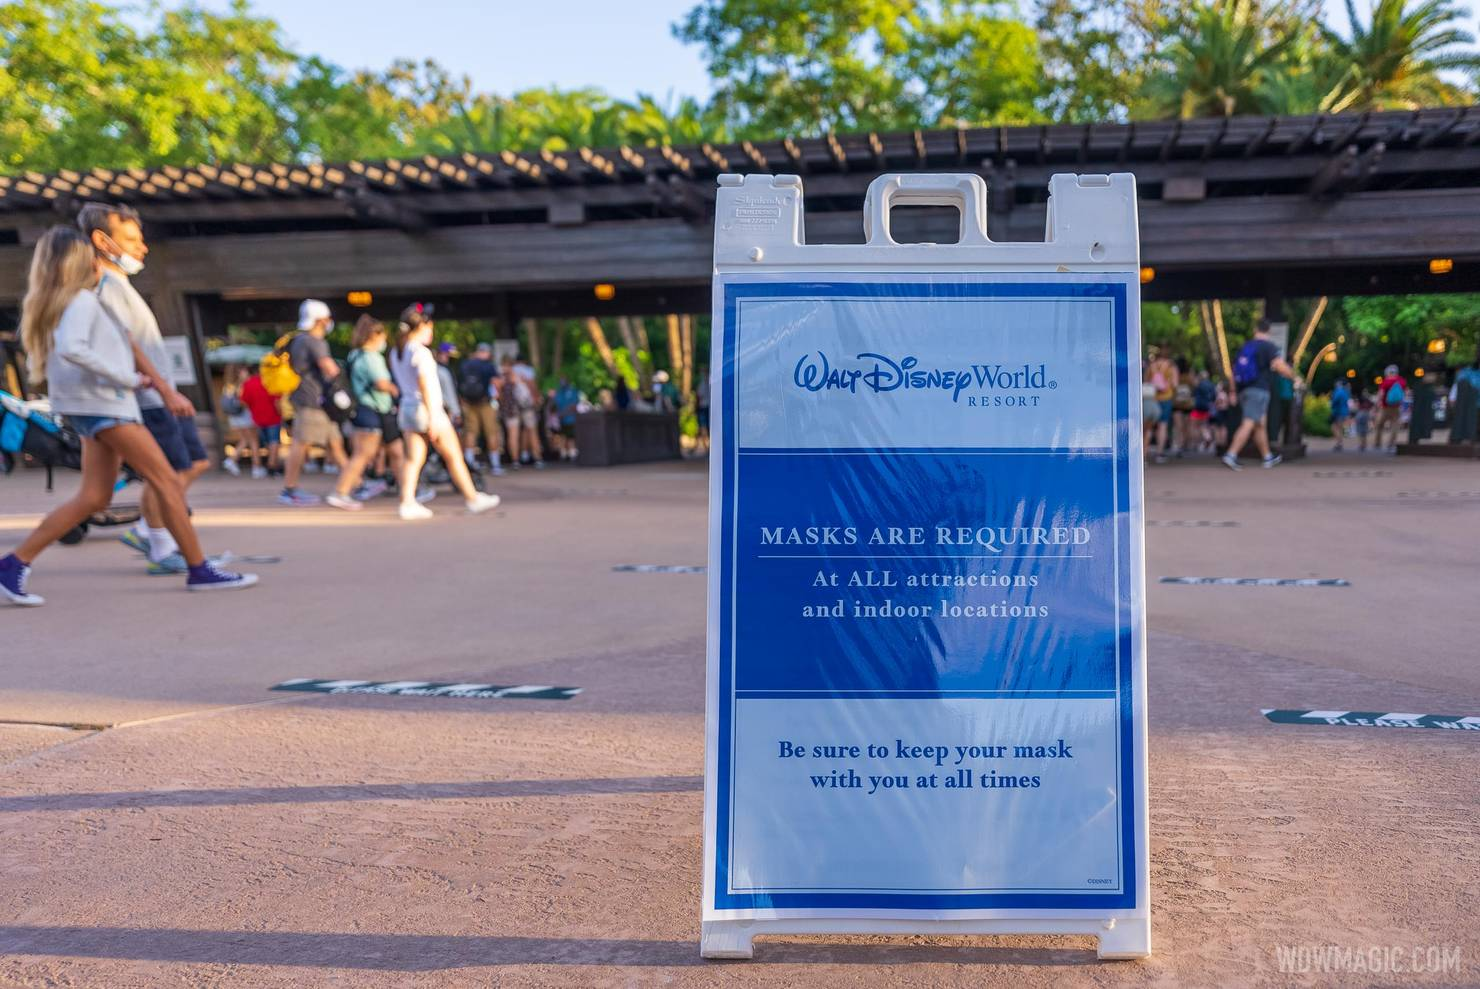 Signage from May 2021 when Disney relaxed outdoor masking but still required indoor masking